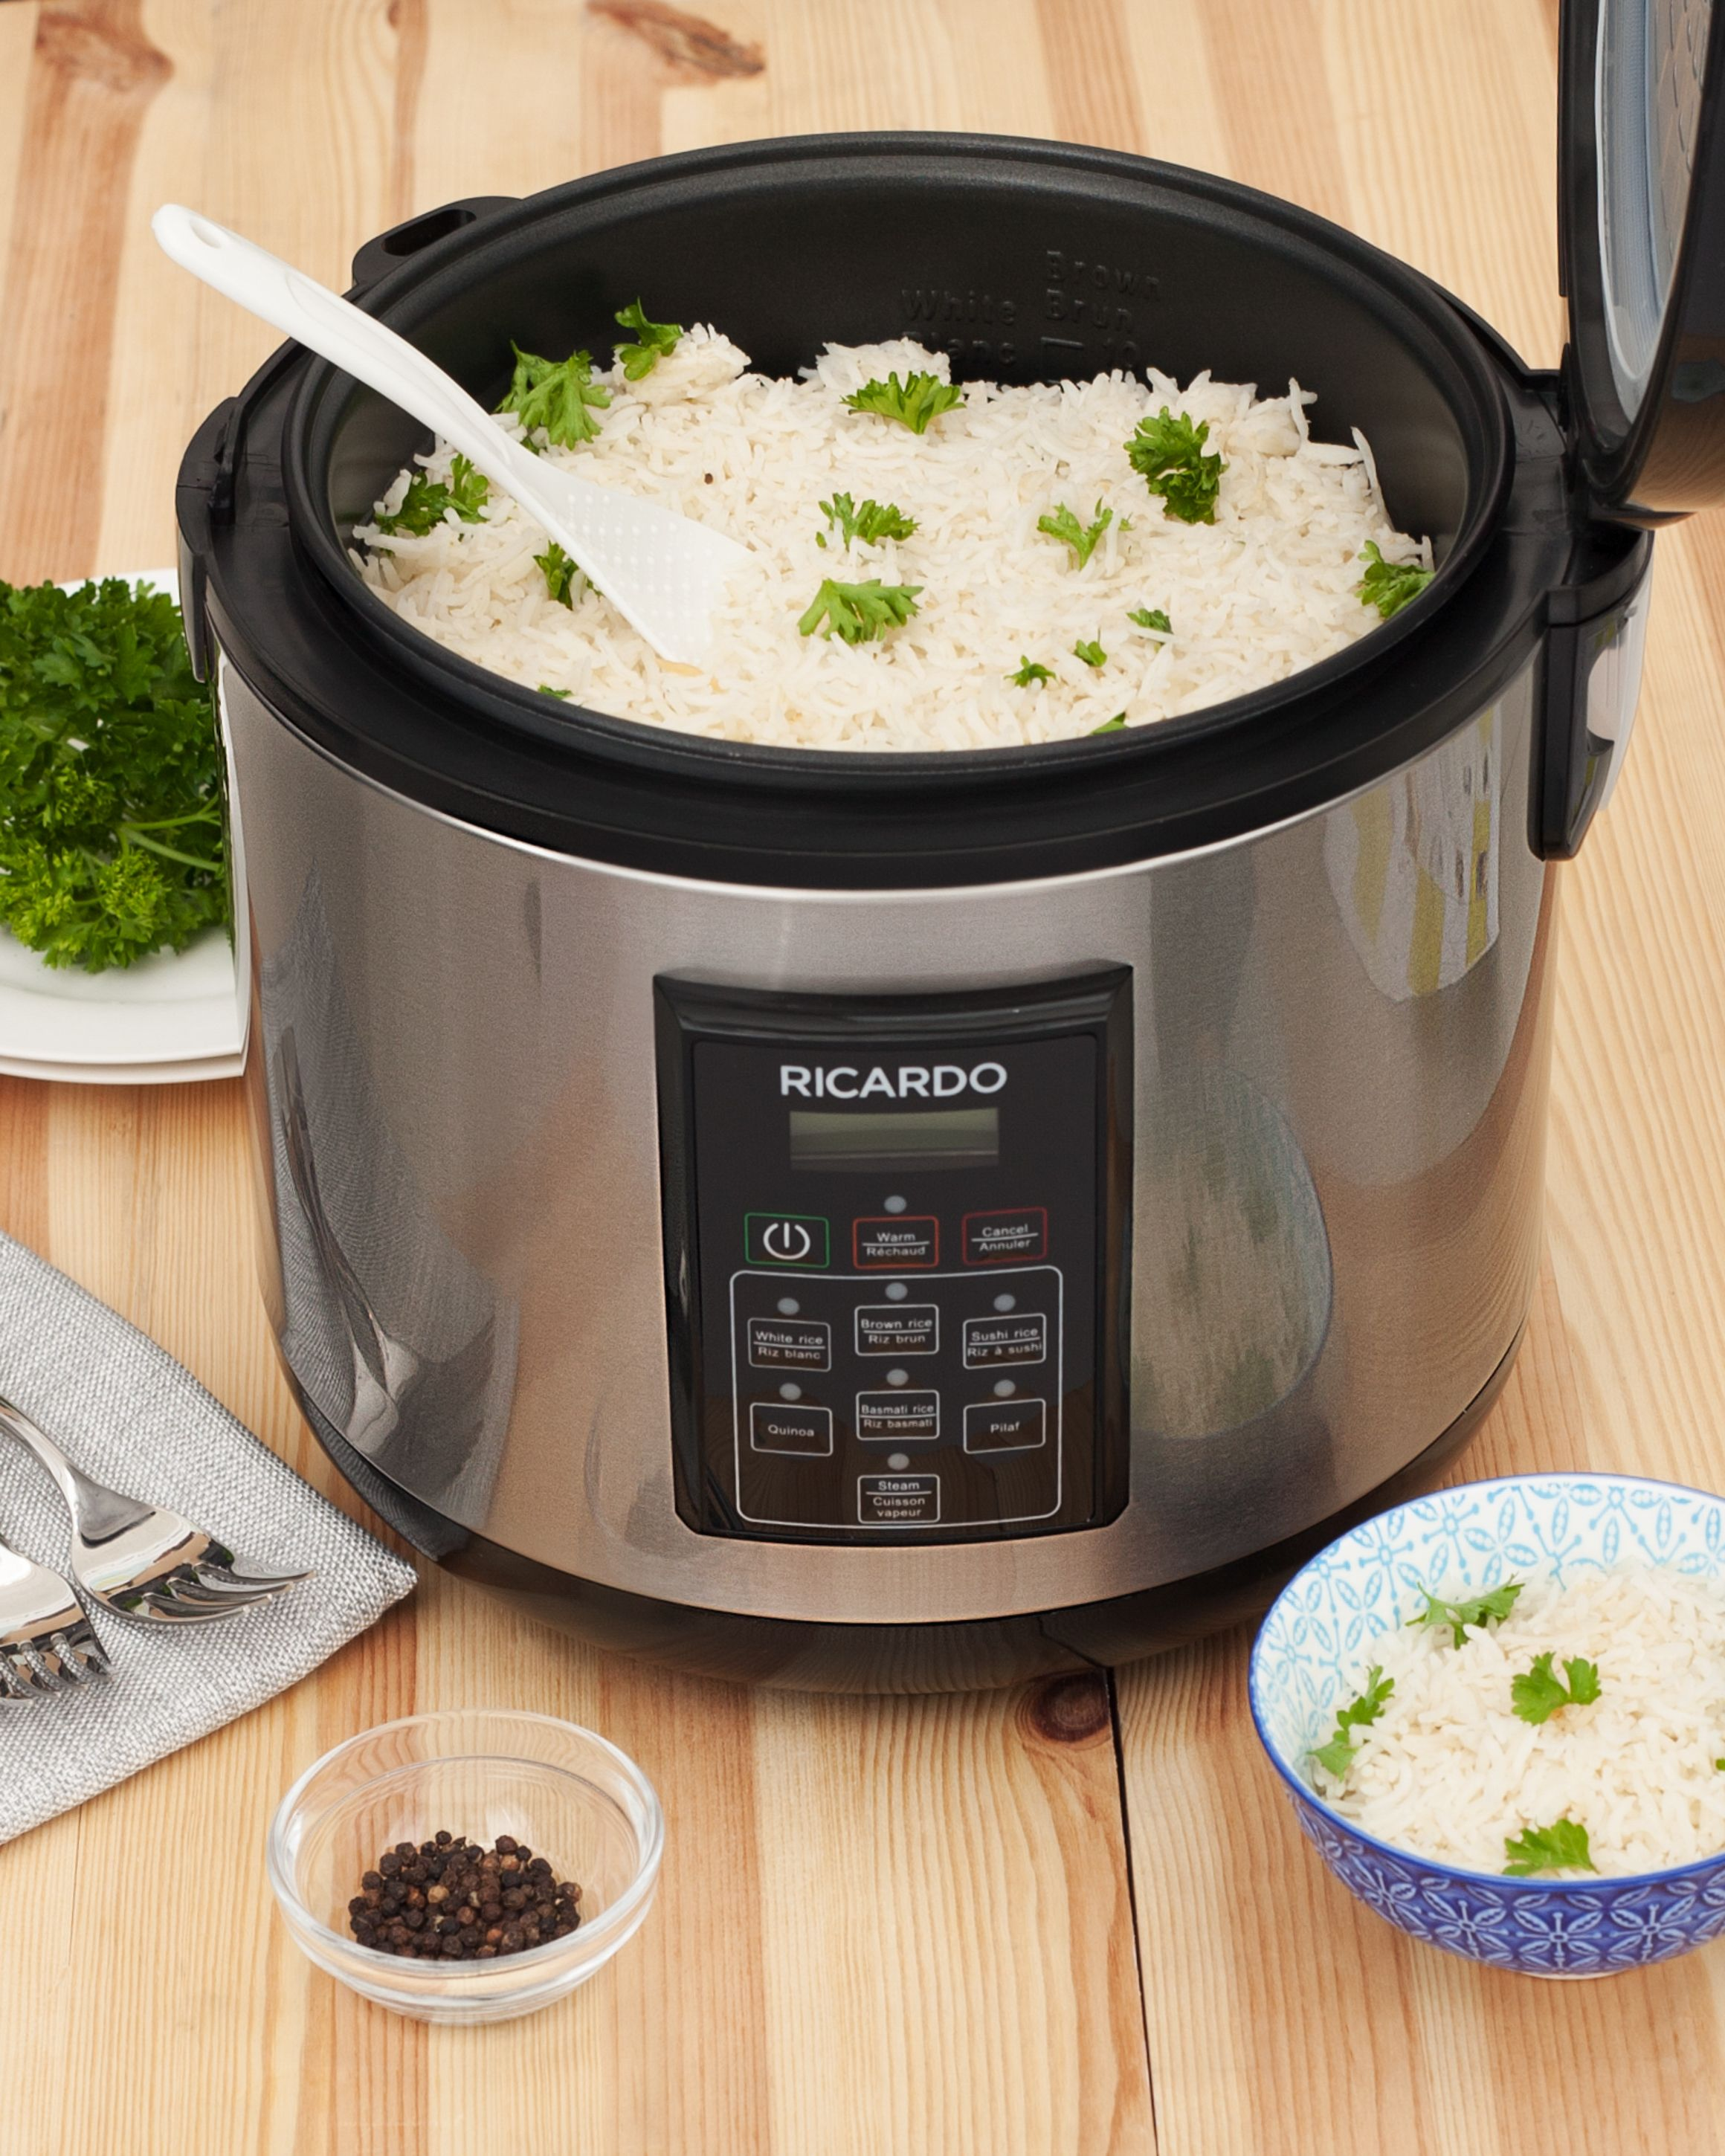 Best Rice Cookers on the Market 2020